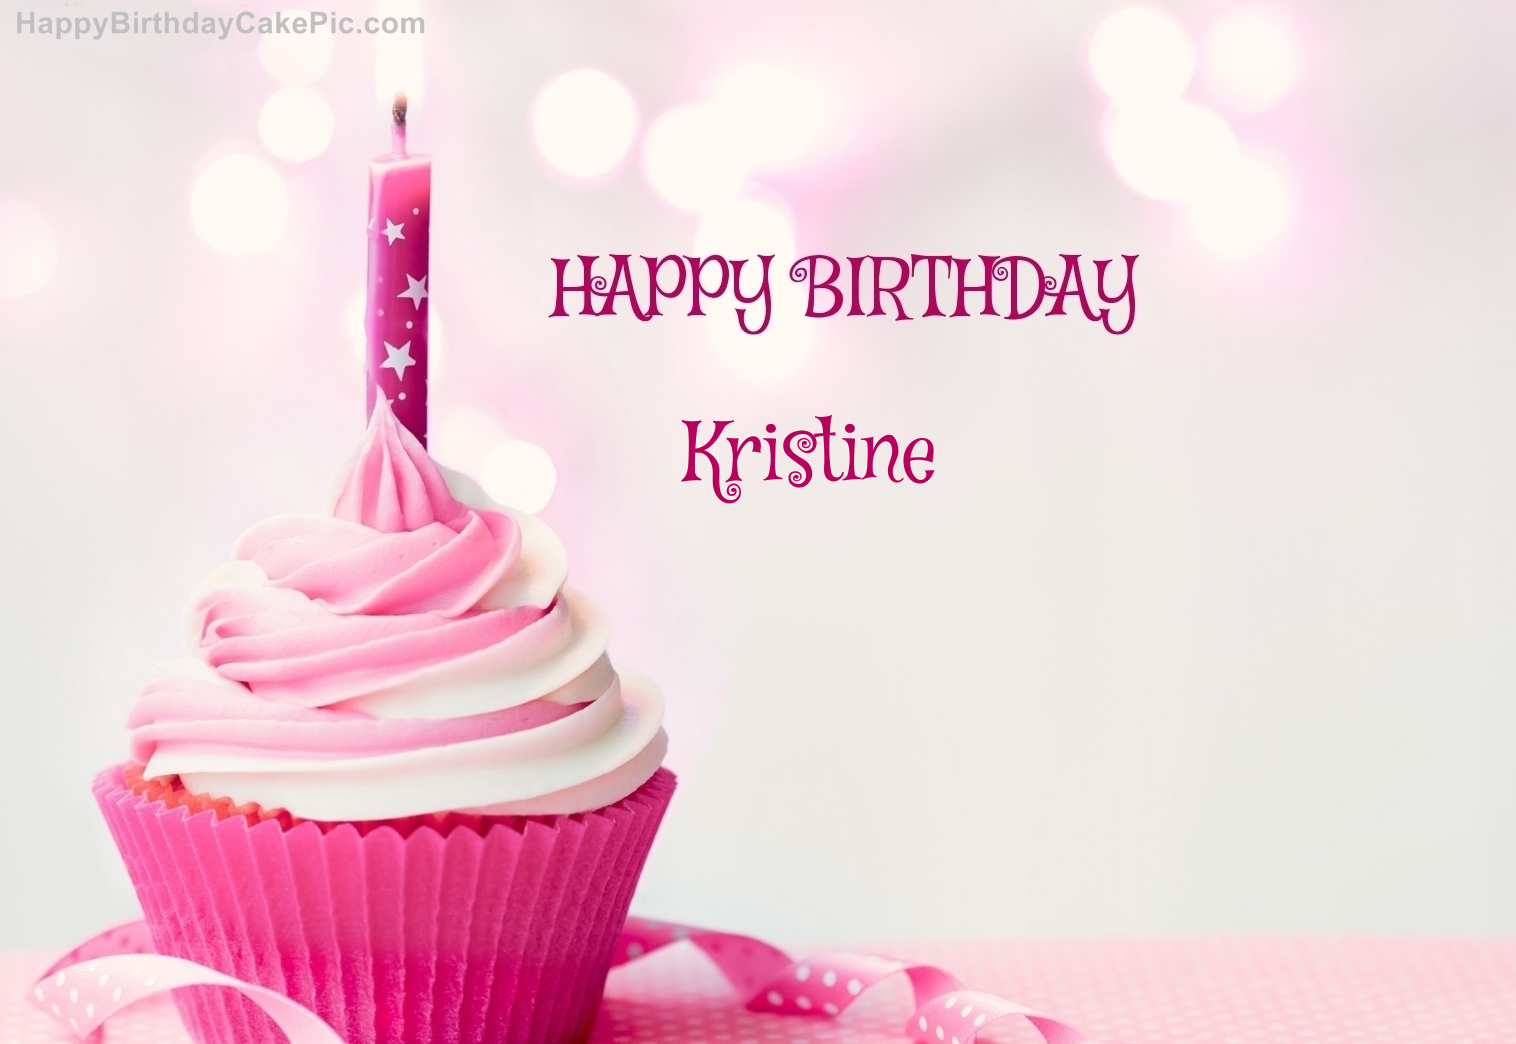 Happy Birthday Cupcake Candle Pink Cake For Kristine